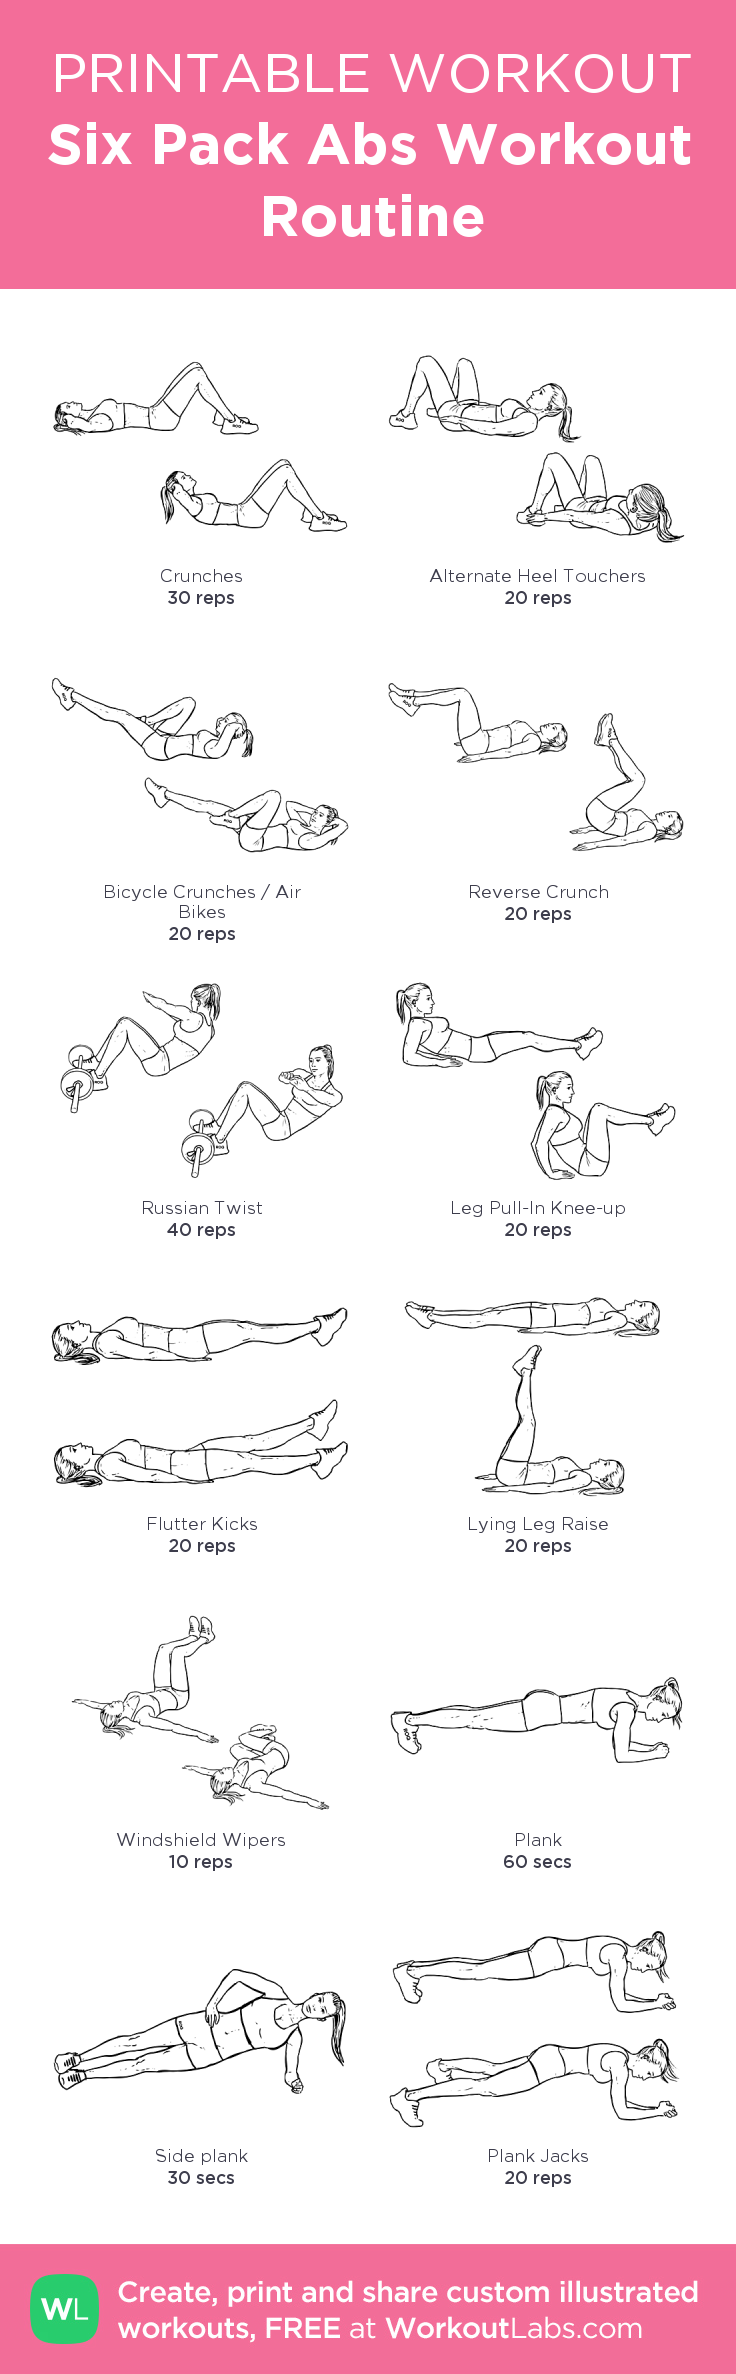 photo relating to Printable Ab Workouts called Create Killer Abdominal muscles With This 10 Min Work out wonderful exercise routines